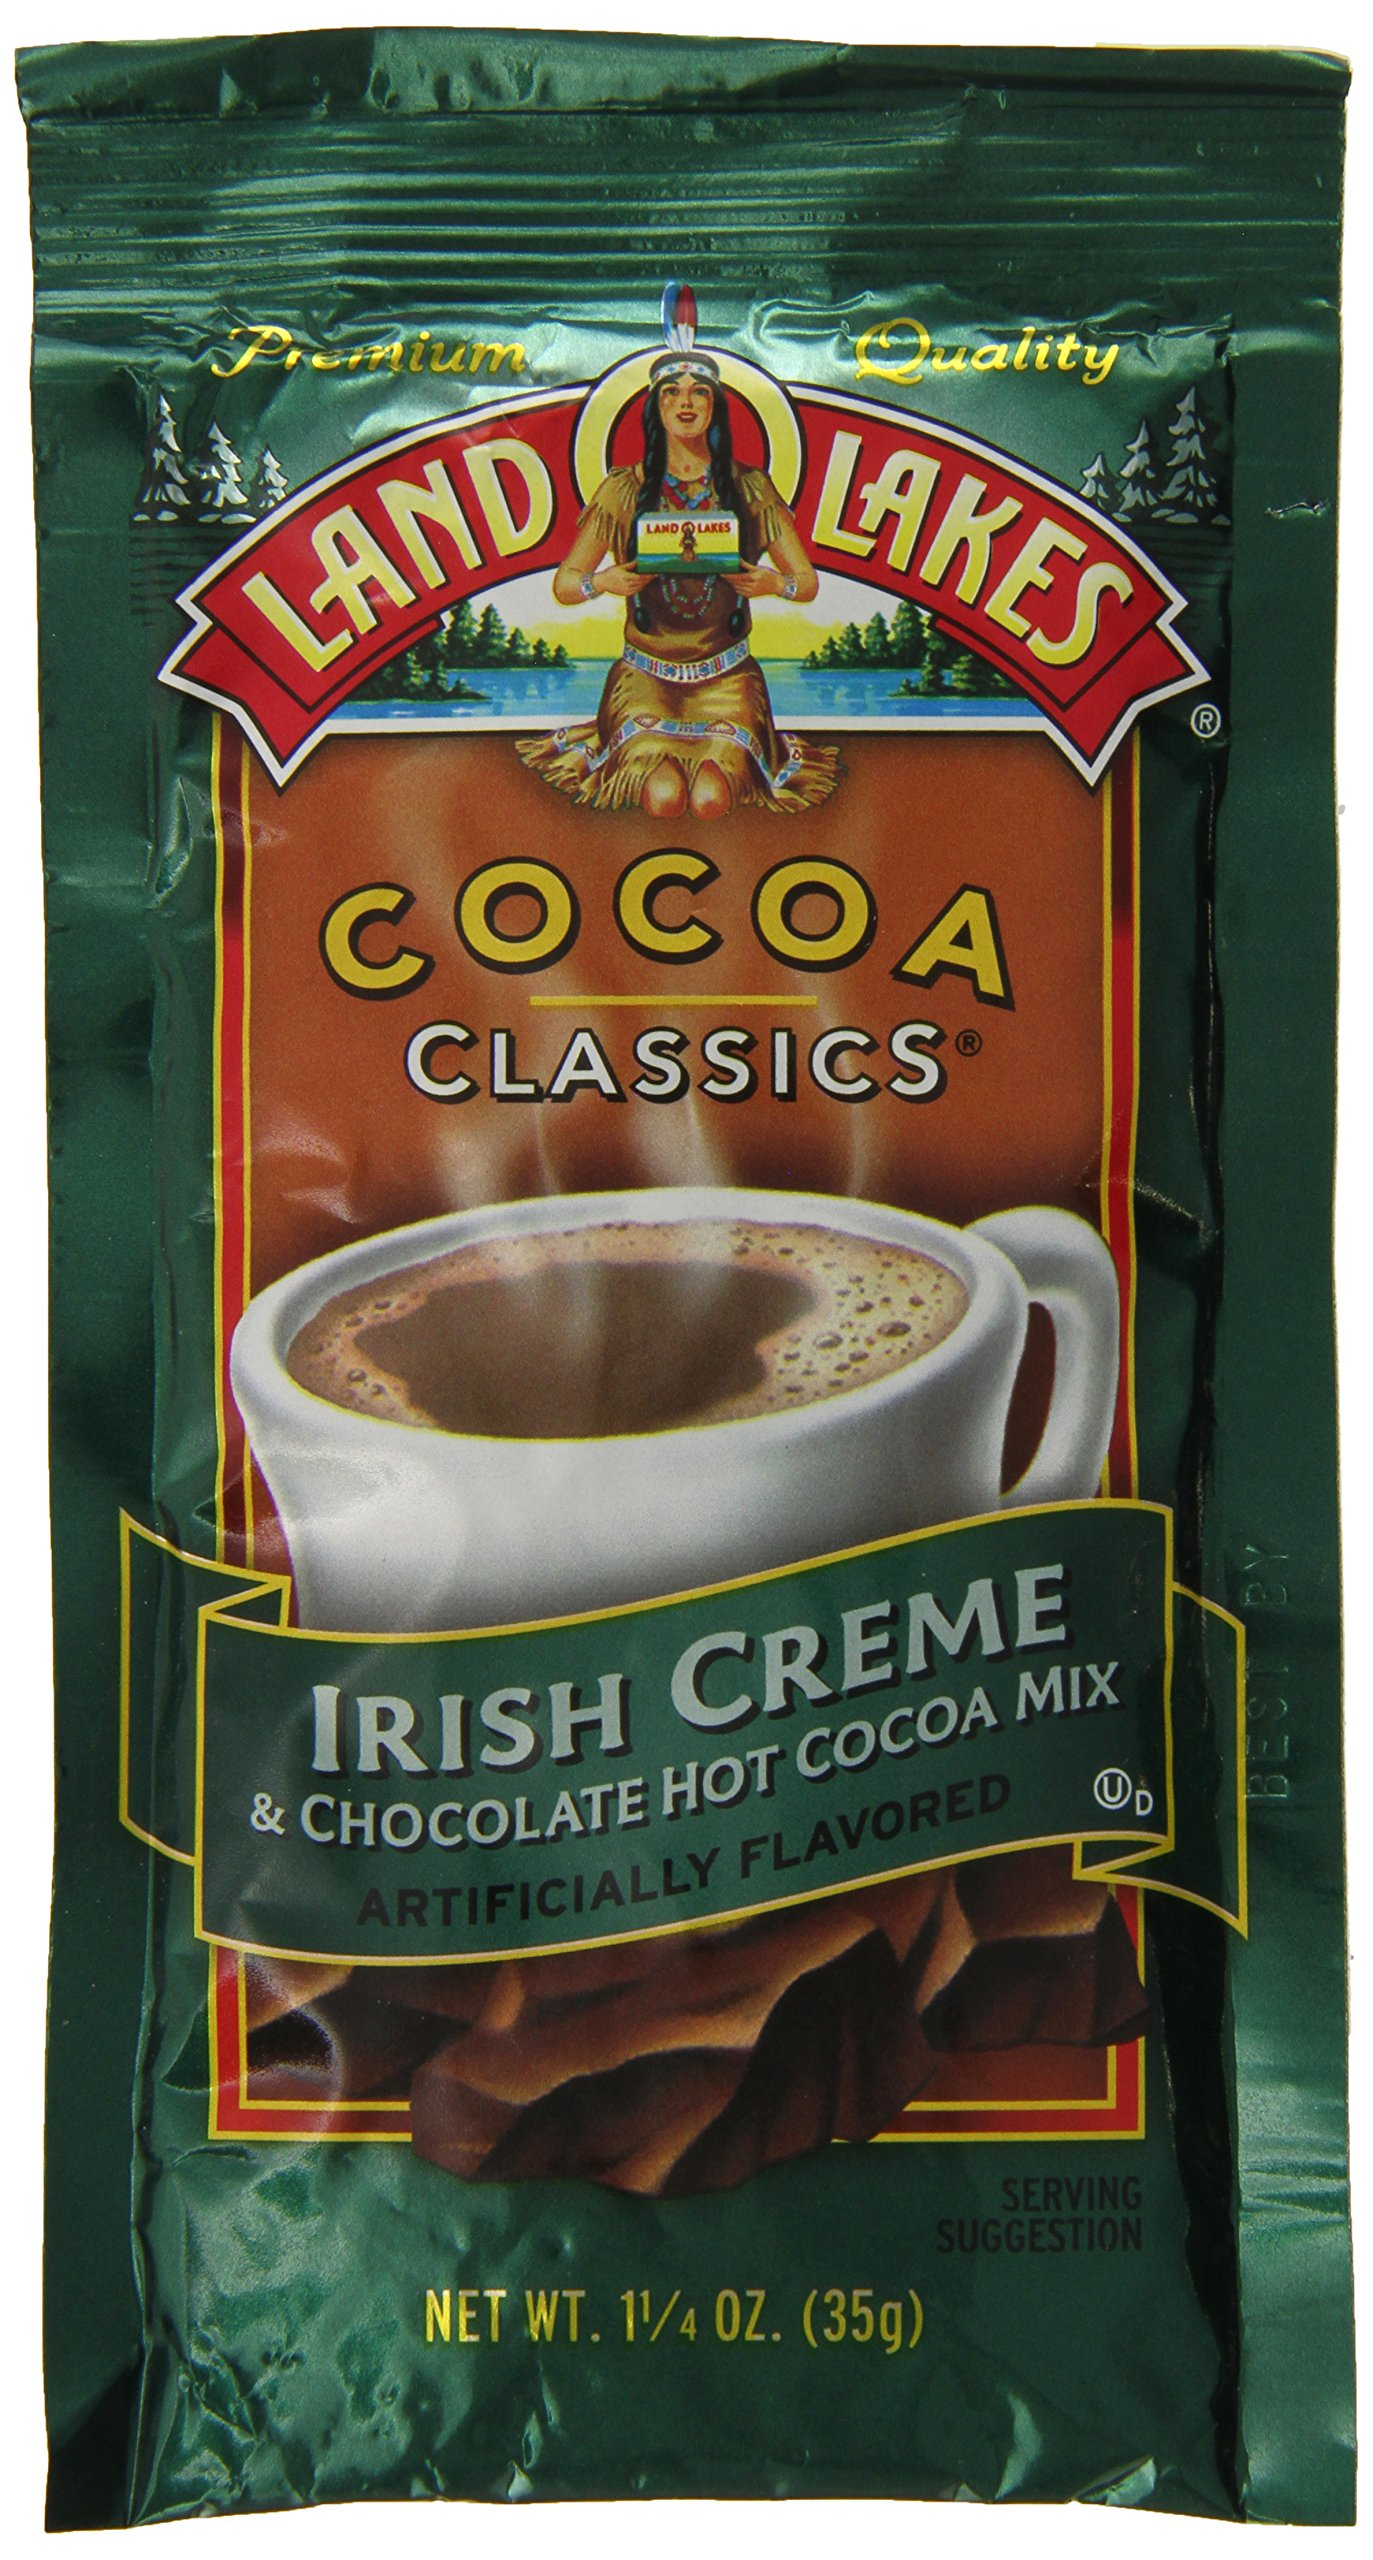 Land O Lakes Cocoa Classics, Irish Creme & Chocolate, 1.25-Ounce Packets (Pack of 12)